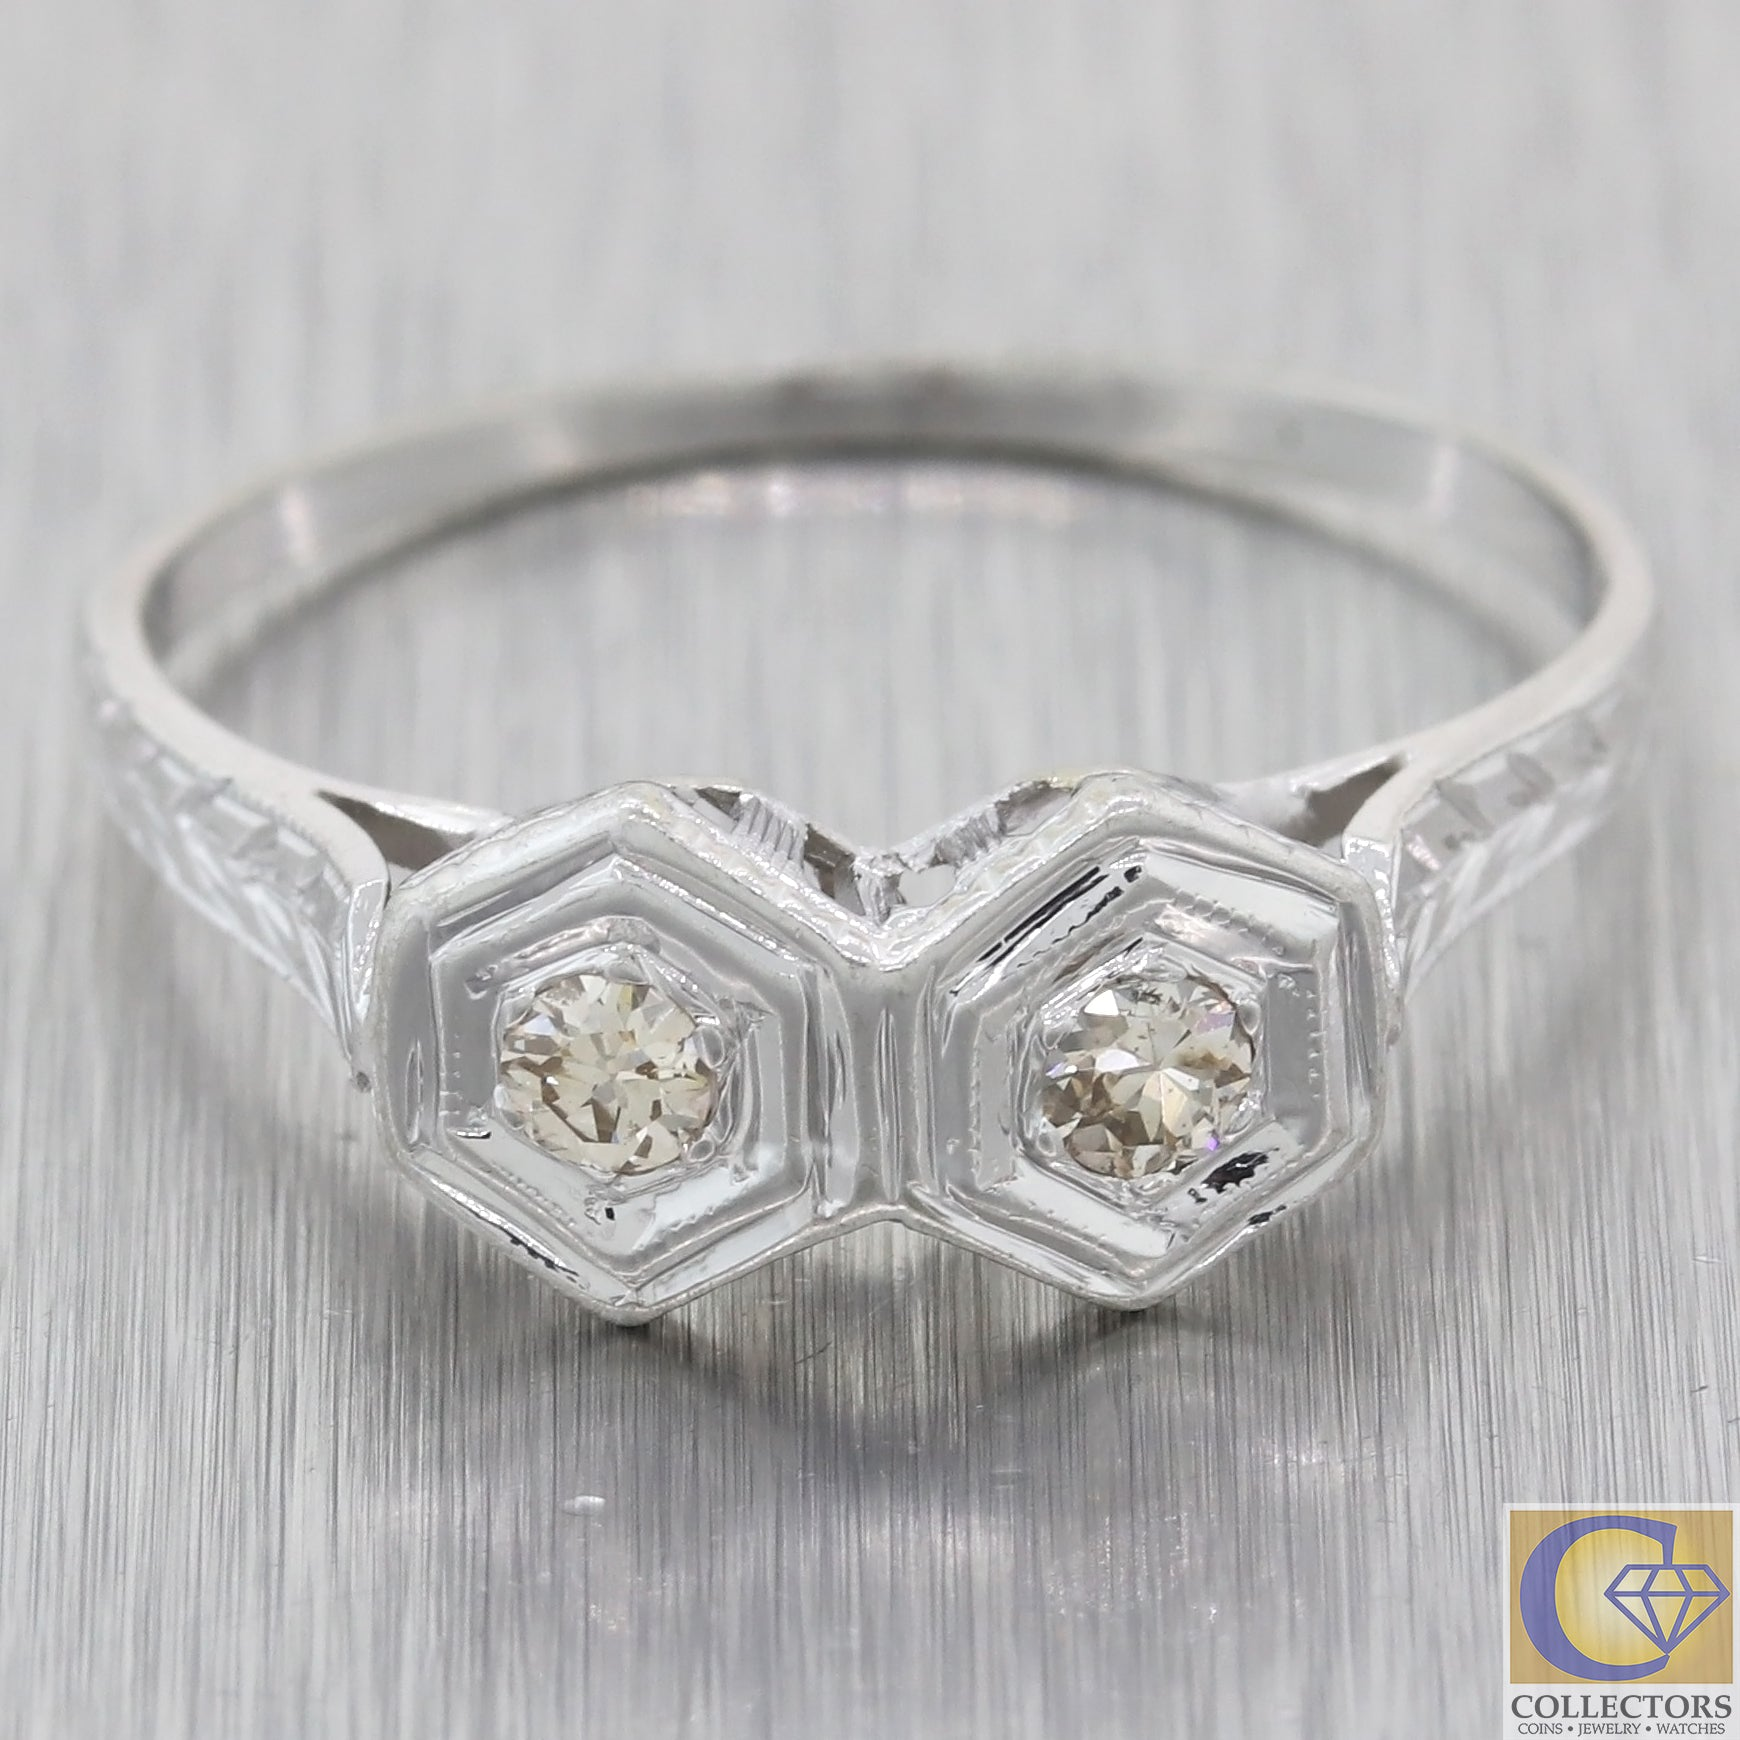 1930s Antique Art Deco Estate 14k White .23ctw Diamond Saddle Ring M8